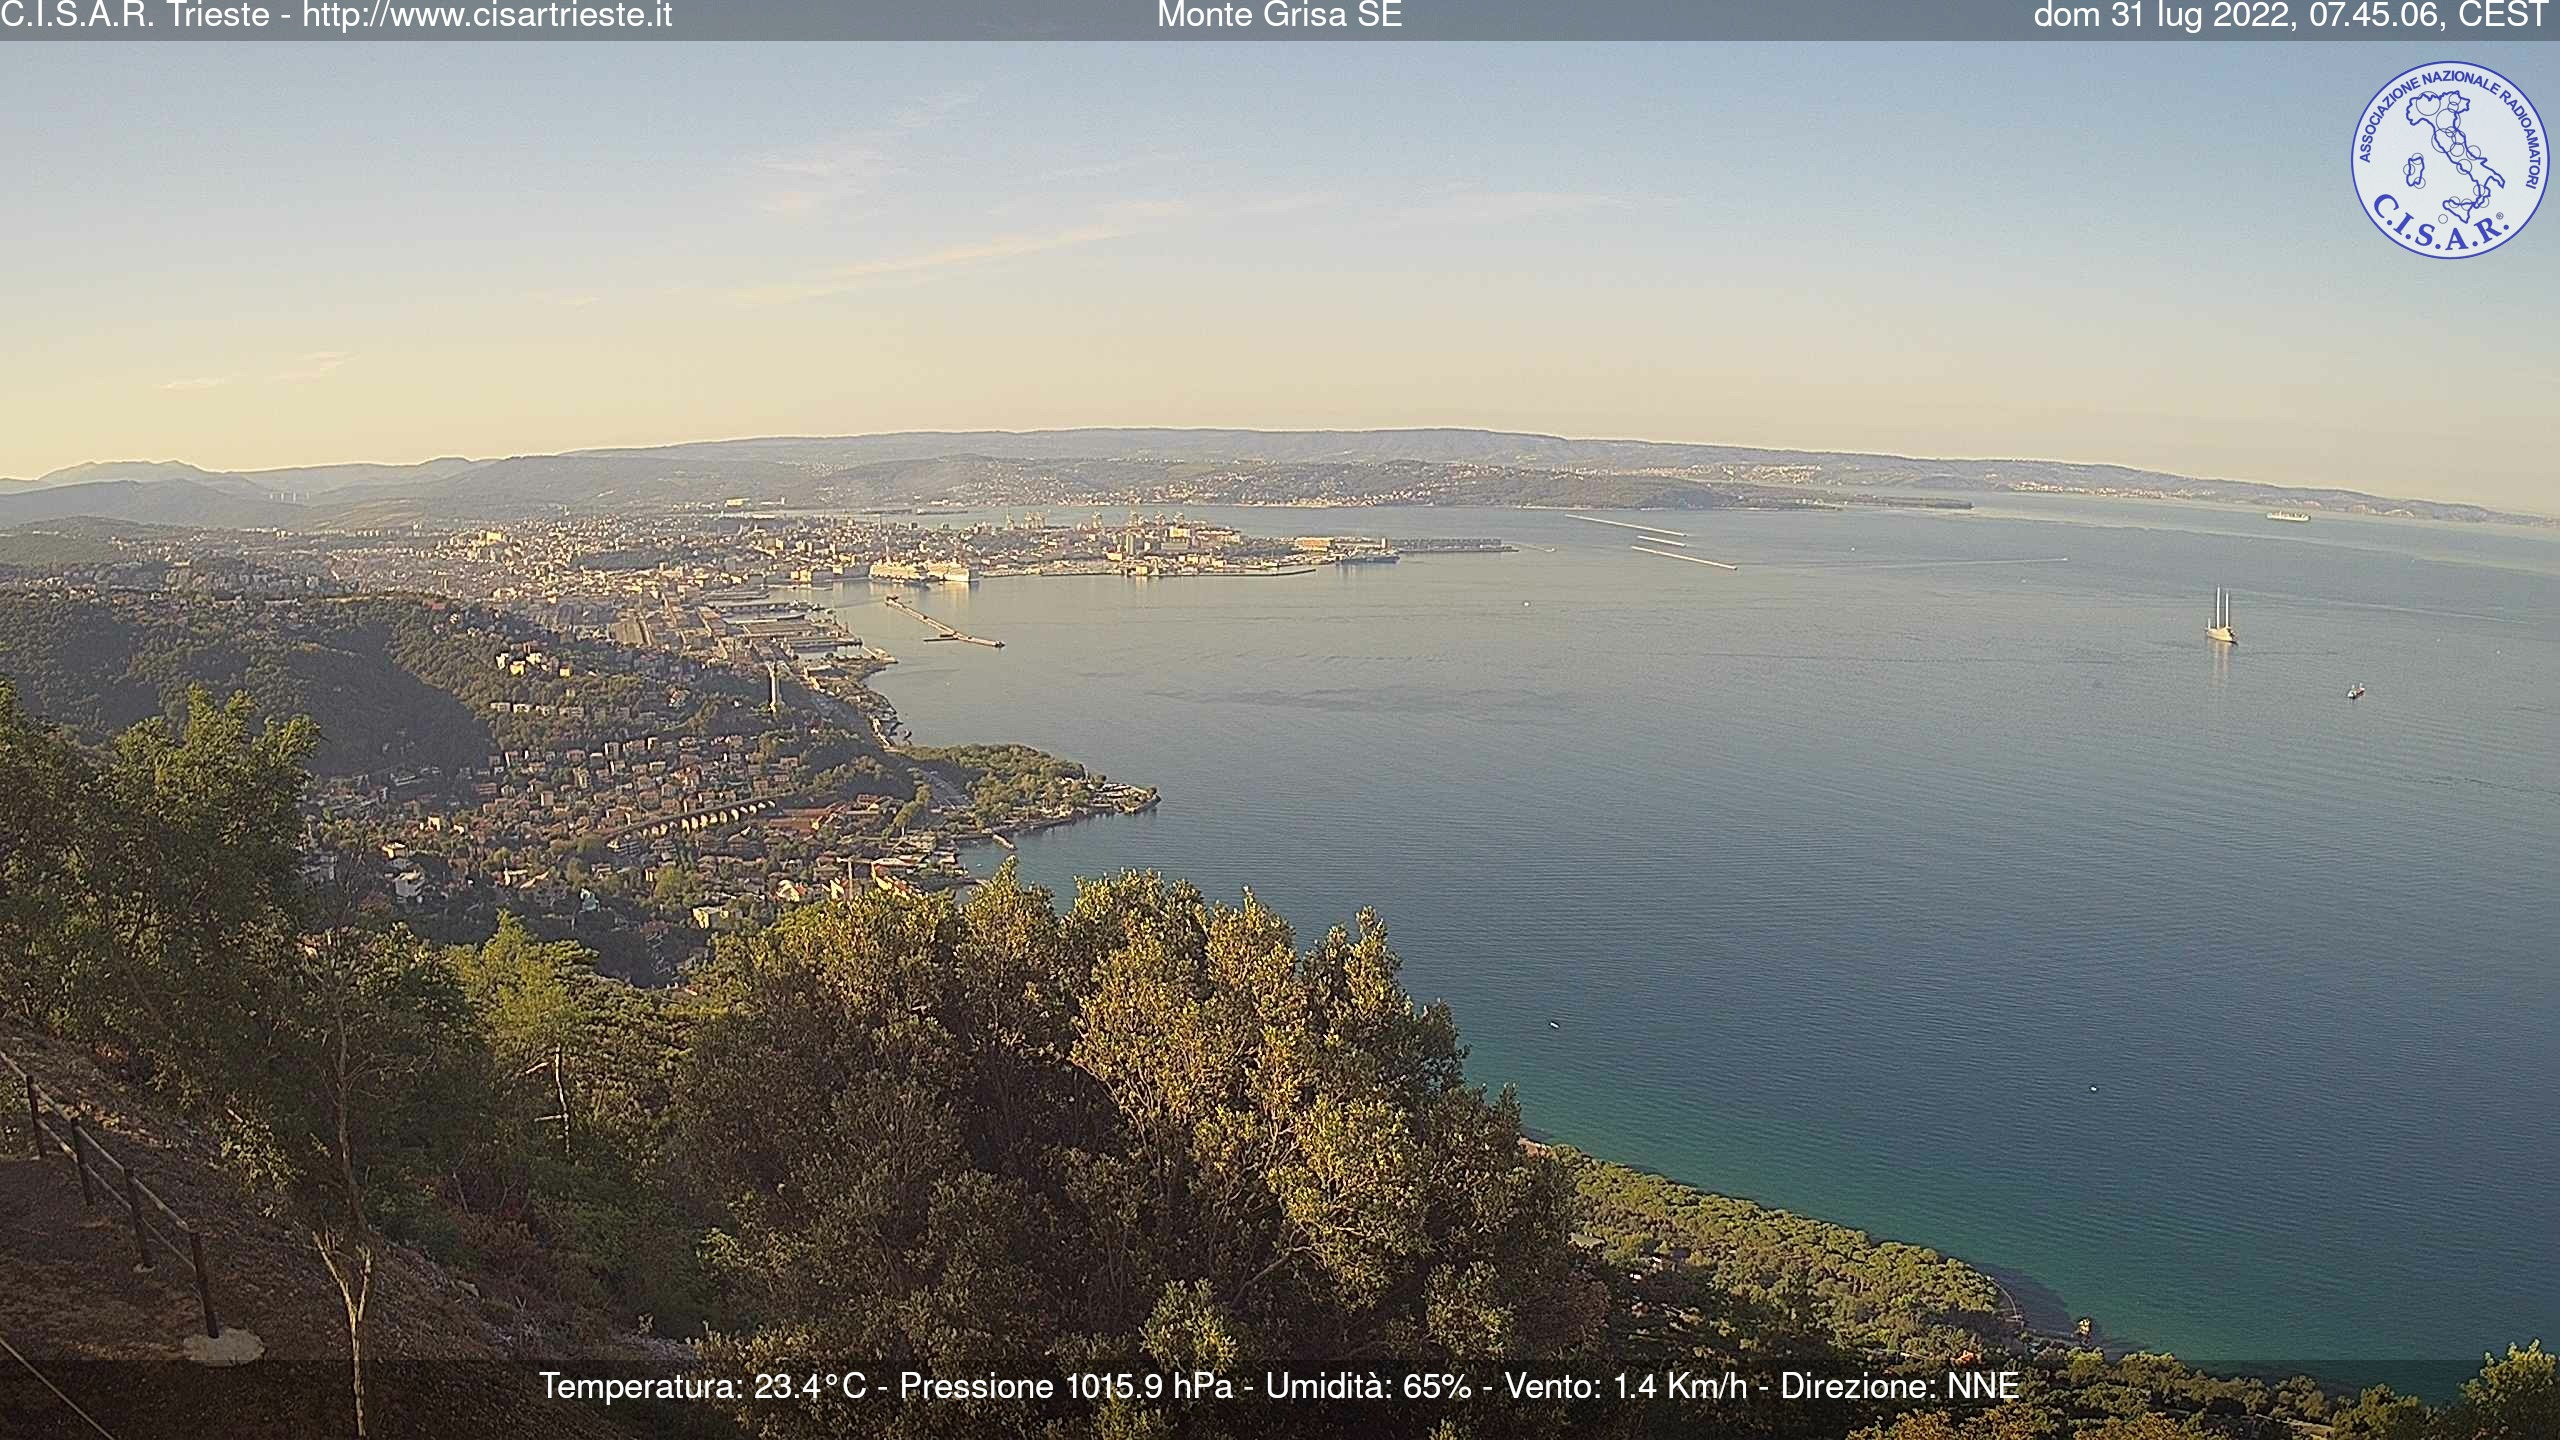 Webcam Trieste Panorama del Golfo